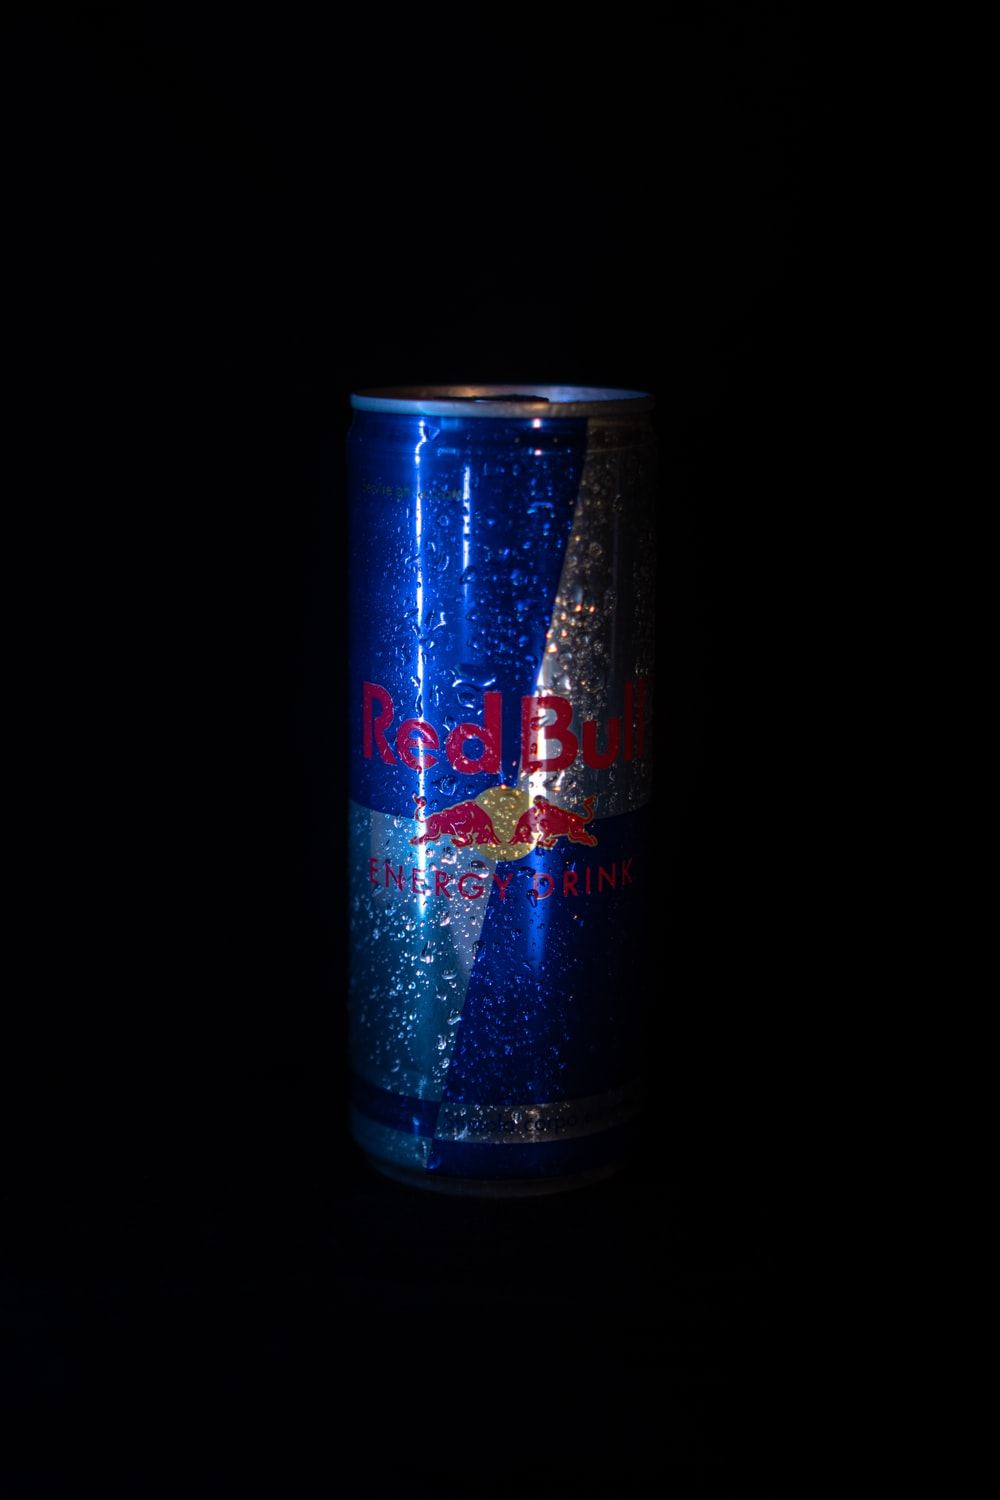 red bull energy drink can